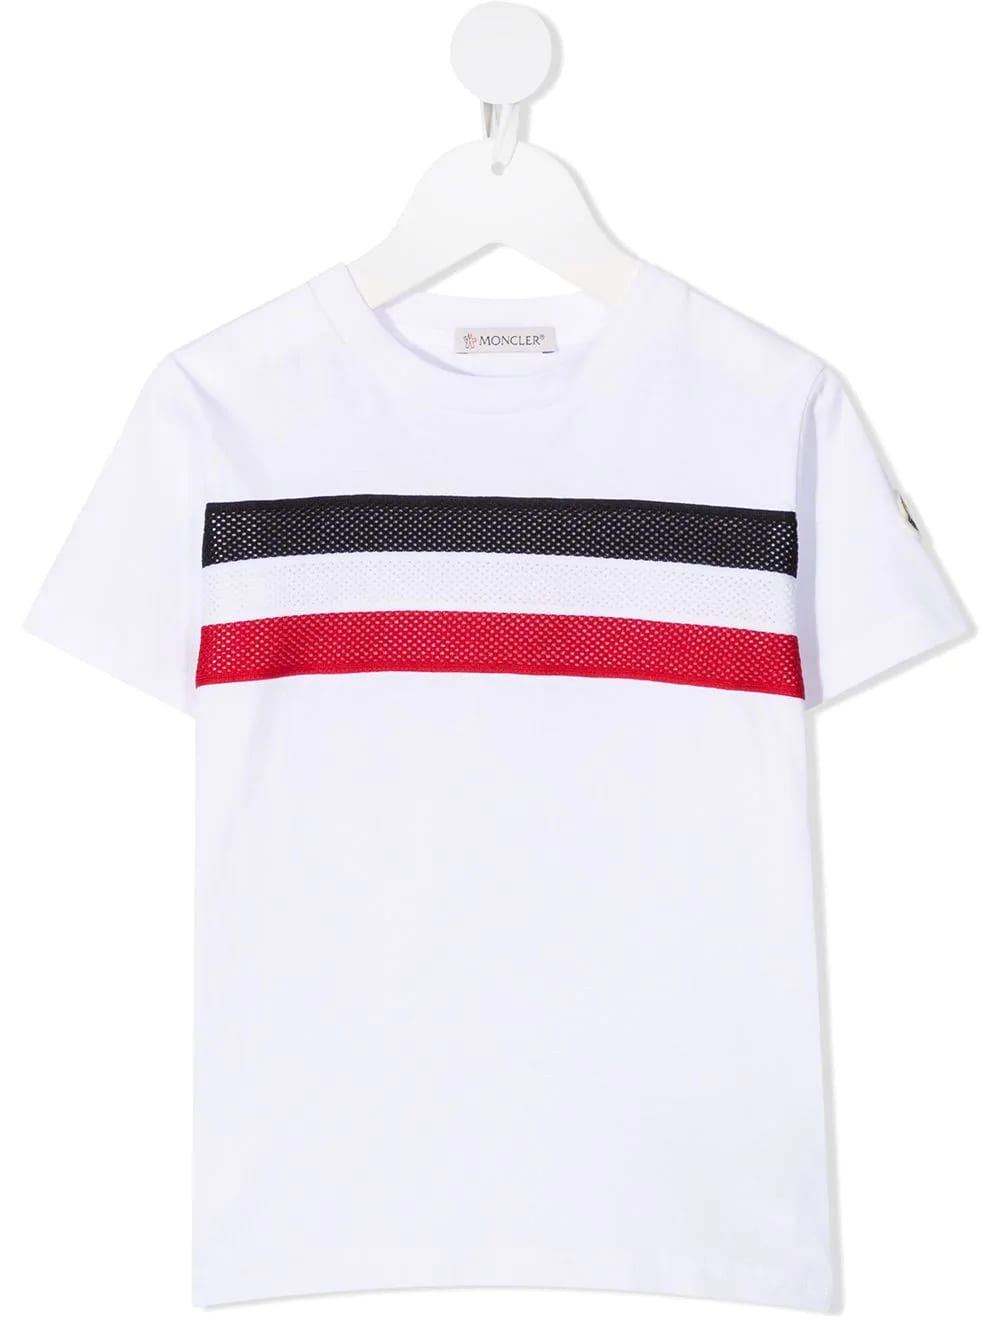 Kid White T-shirt With Tricolor Mesh Insert